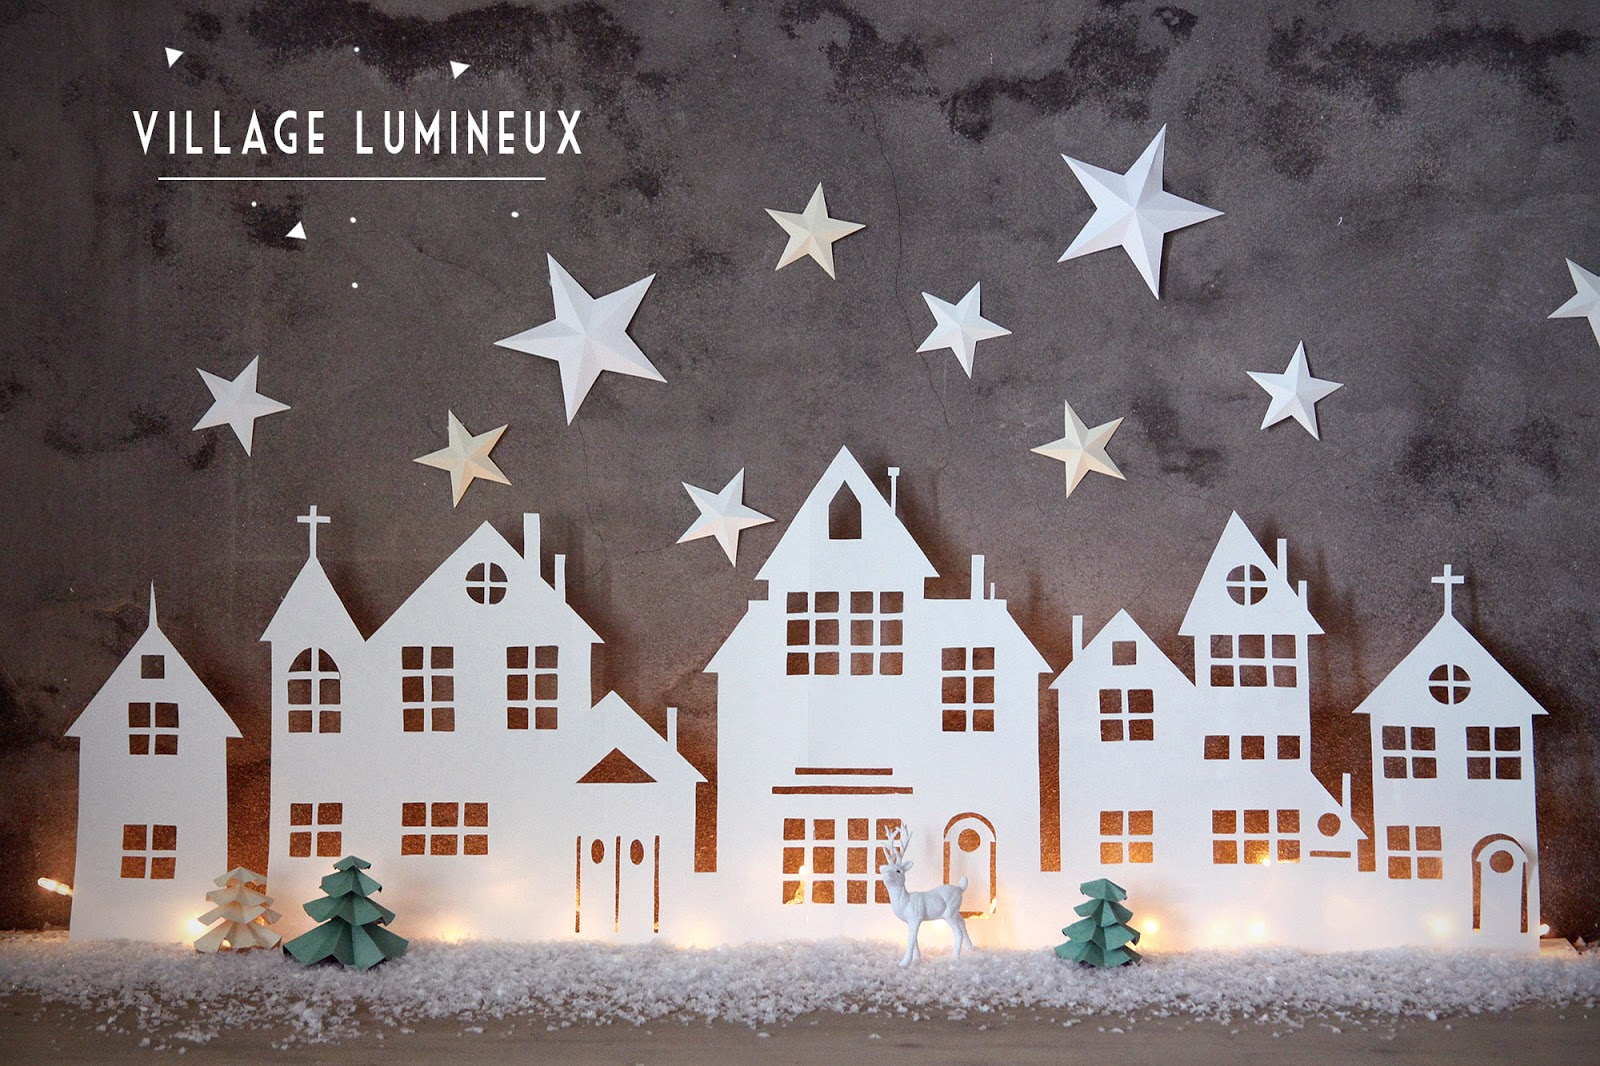 Diy village lumineux de no l for Decoration fenetre noel diy